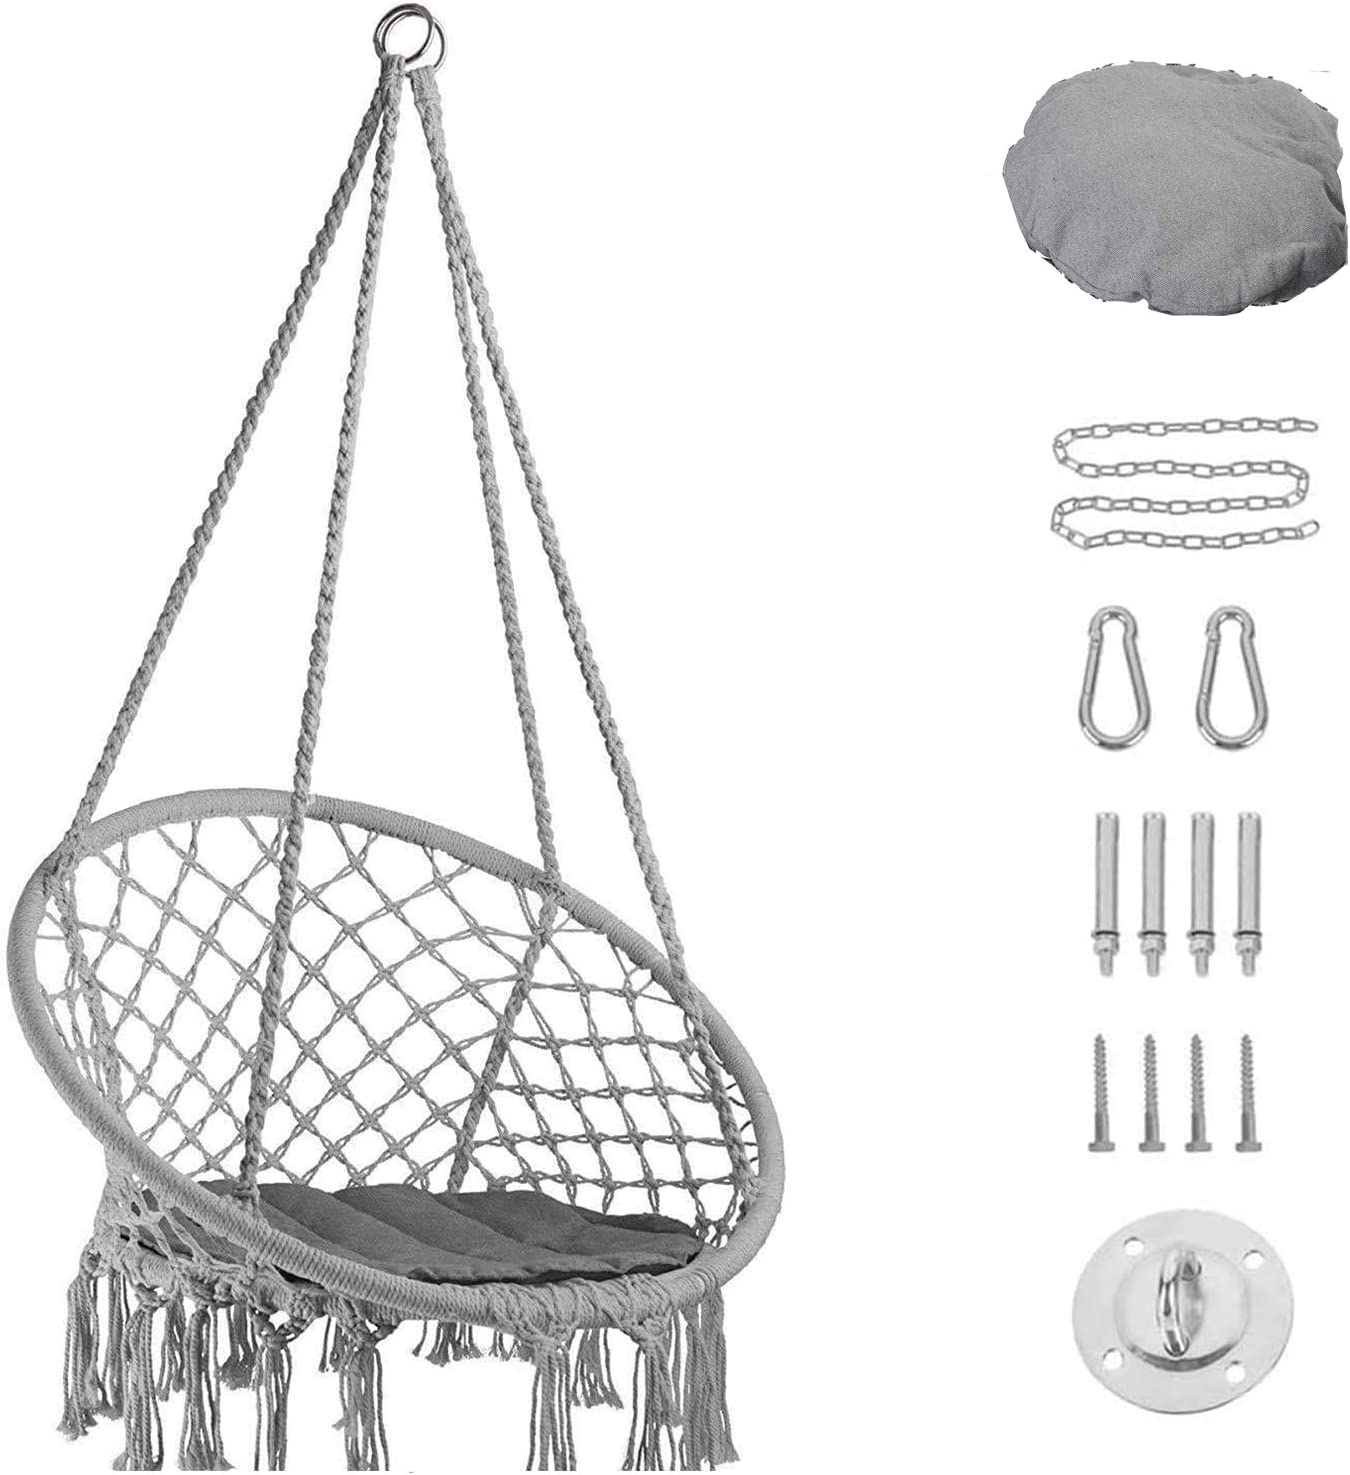 CHOiES record your inspired fashion Hammock Chair Hanging Hardware Kit and Cussion, 330 Pound Capacity,Mesh Cotton Rope Macrame Swing for Bedroom, Outdoors, Garden, Patio, Yard. Child, Girl, Adult